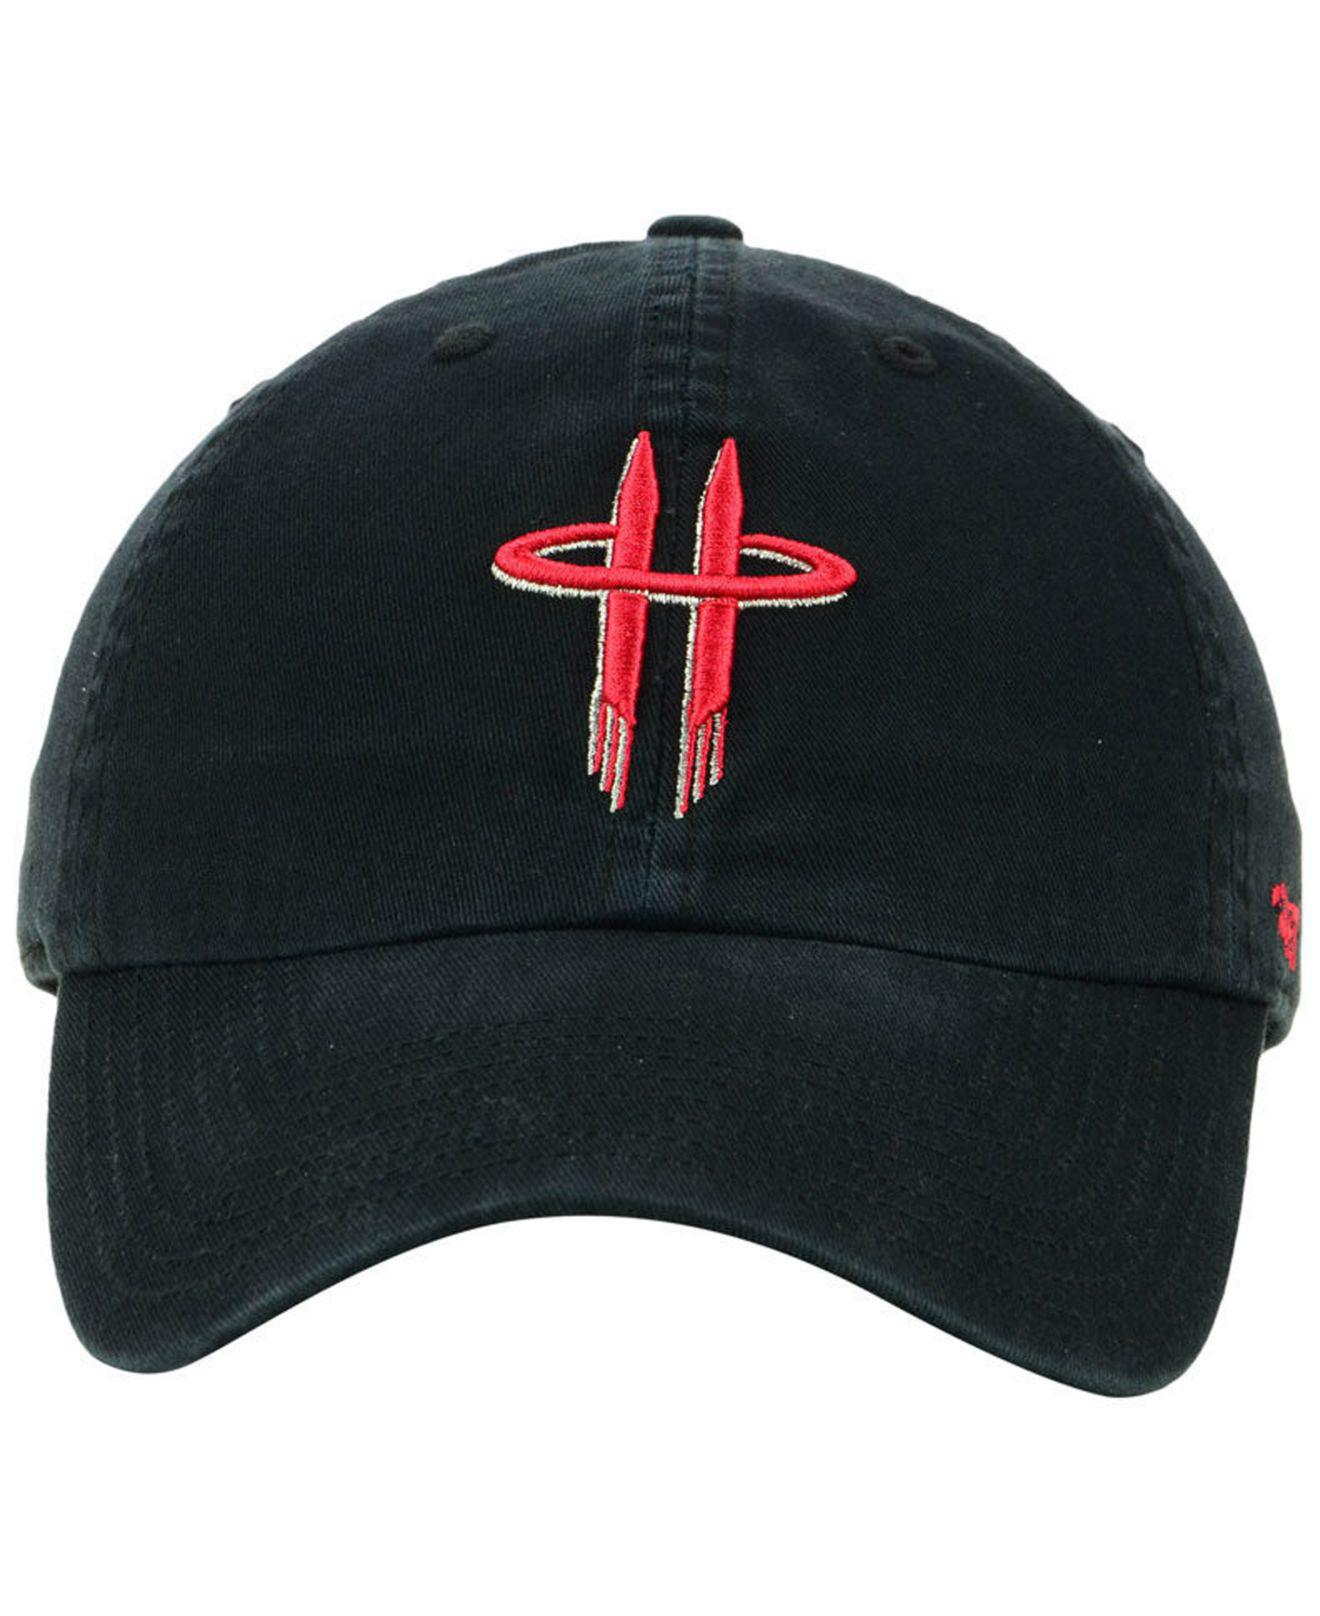 quality design d7b6f 3fac1 ... ncaa double out 47 clean up cap 20968086 2018 new style 1696f 574a2   wholesale 47 brand. mens black houston rockets mash up clean up cap d0dbe  388d5